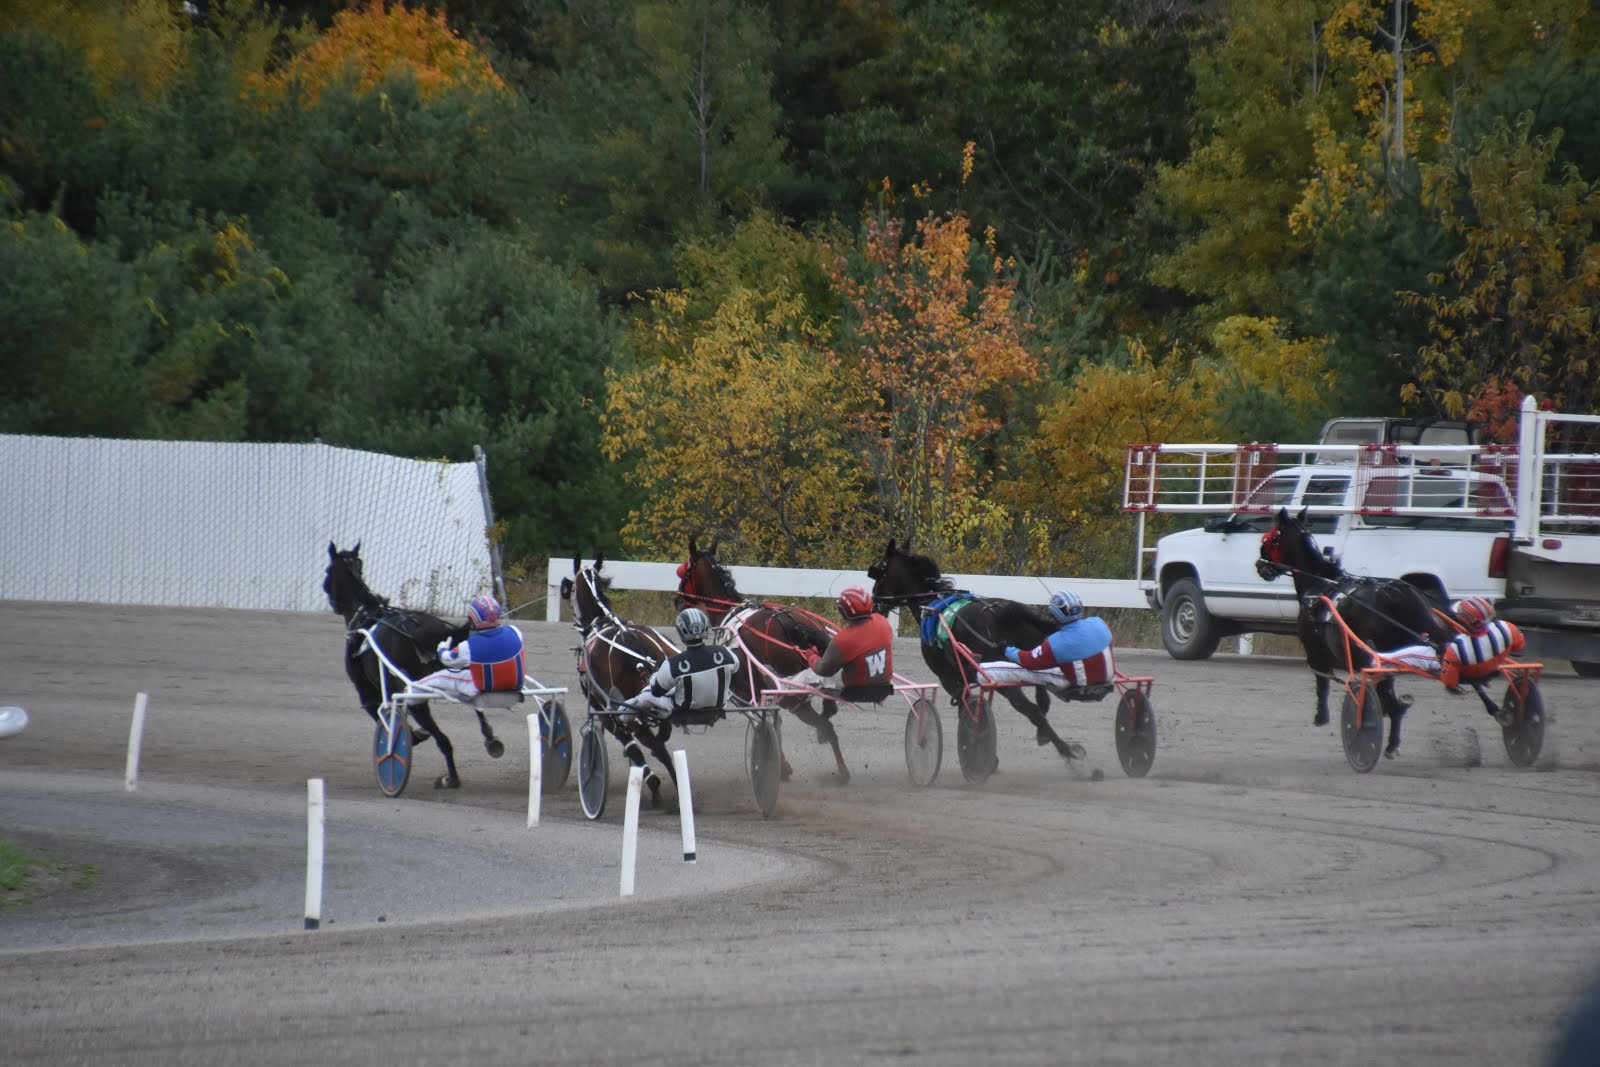 The Maine Harness Racing Commission